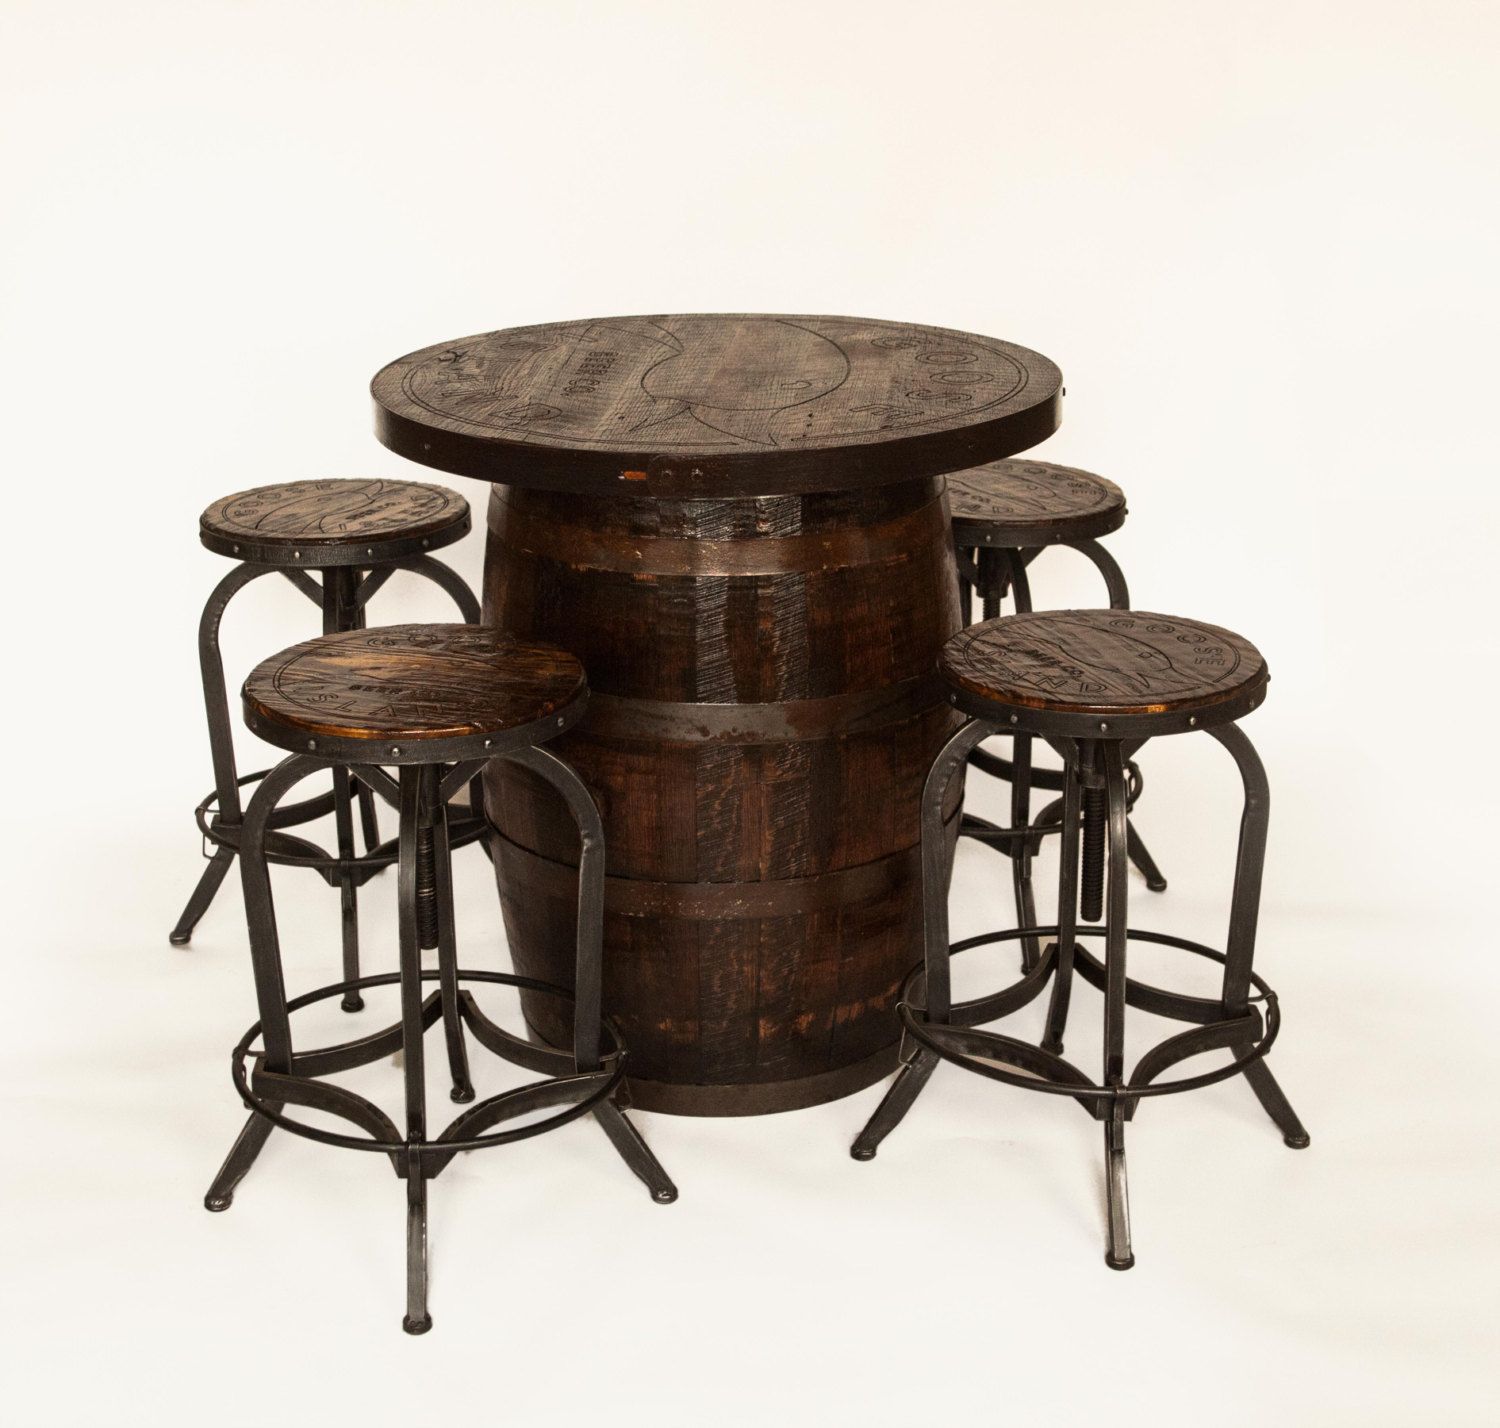 Superieur Reclaimed Bourbon Barrel Engraved Personalized Tables For Your Business Or  Home With 4 Matching Stools